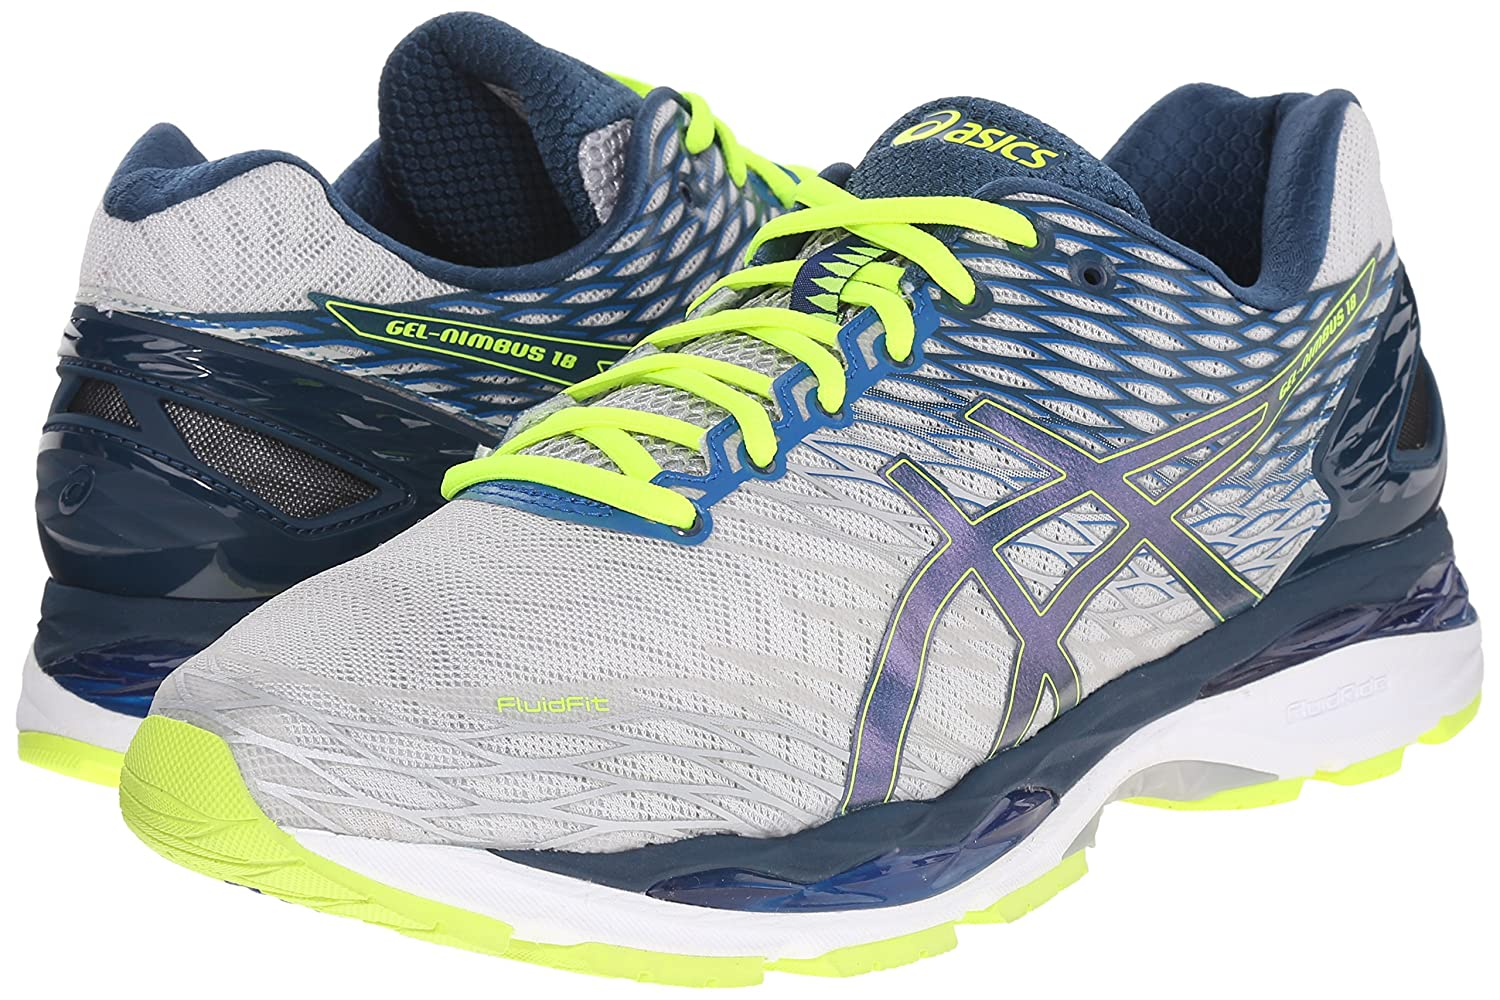 Asics Mens Shoes Amazon 5ebmMpcU